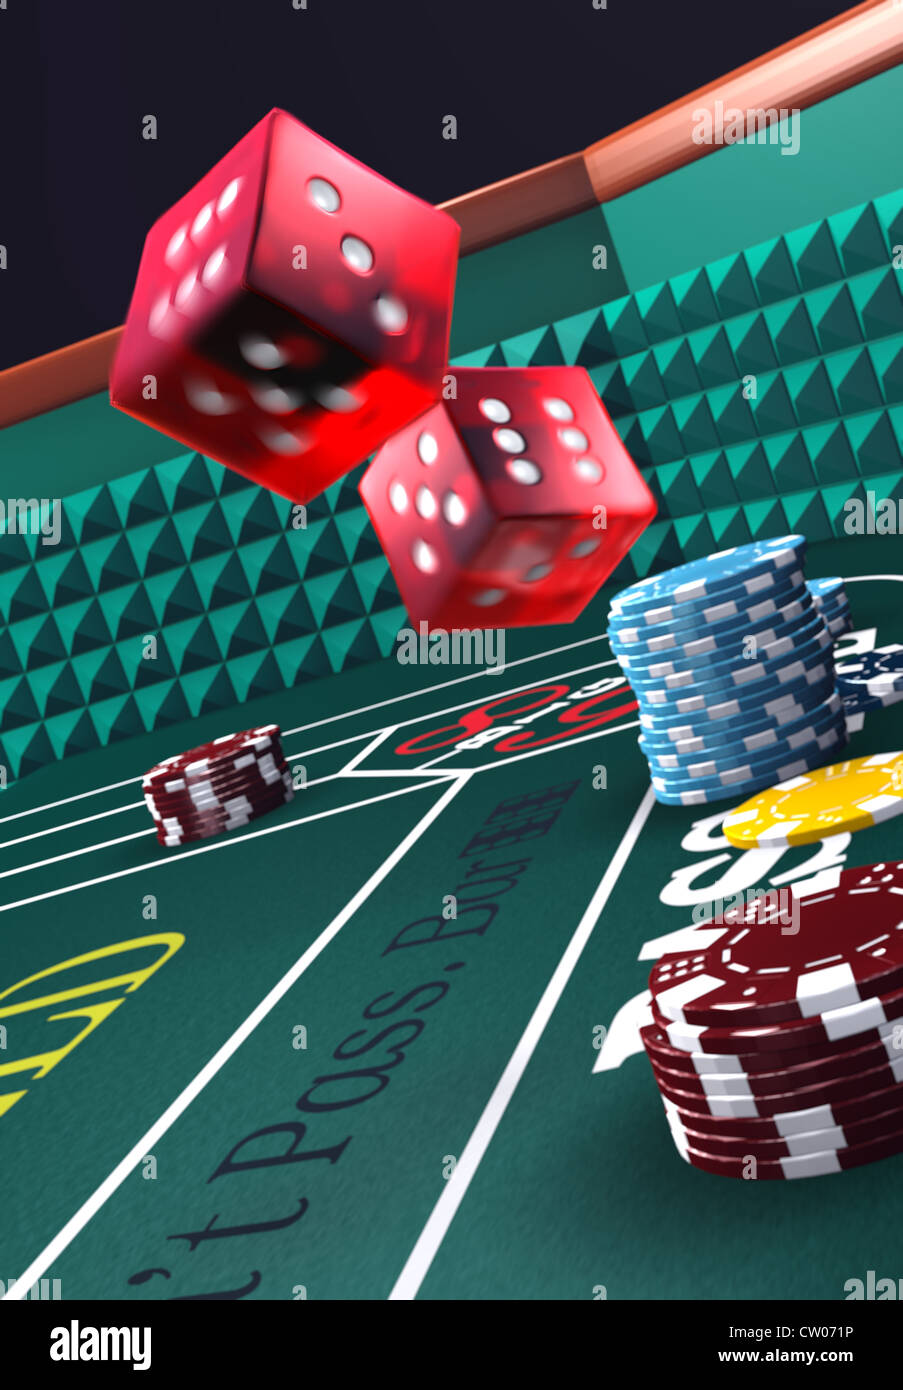 Casino craps table - Stock Image